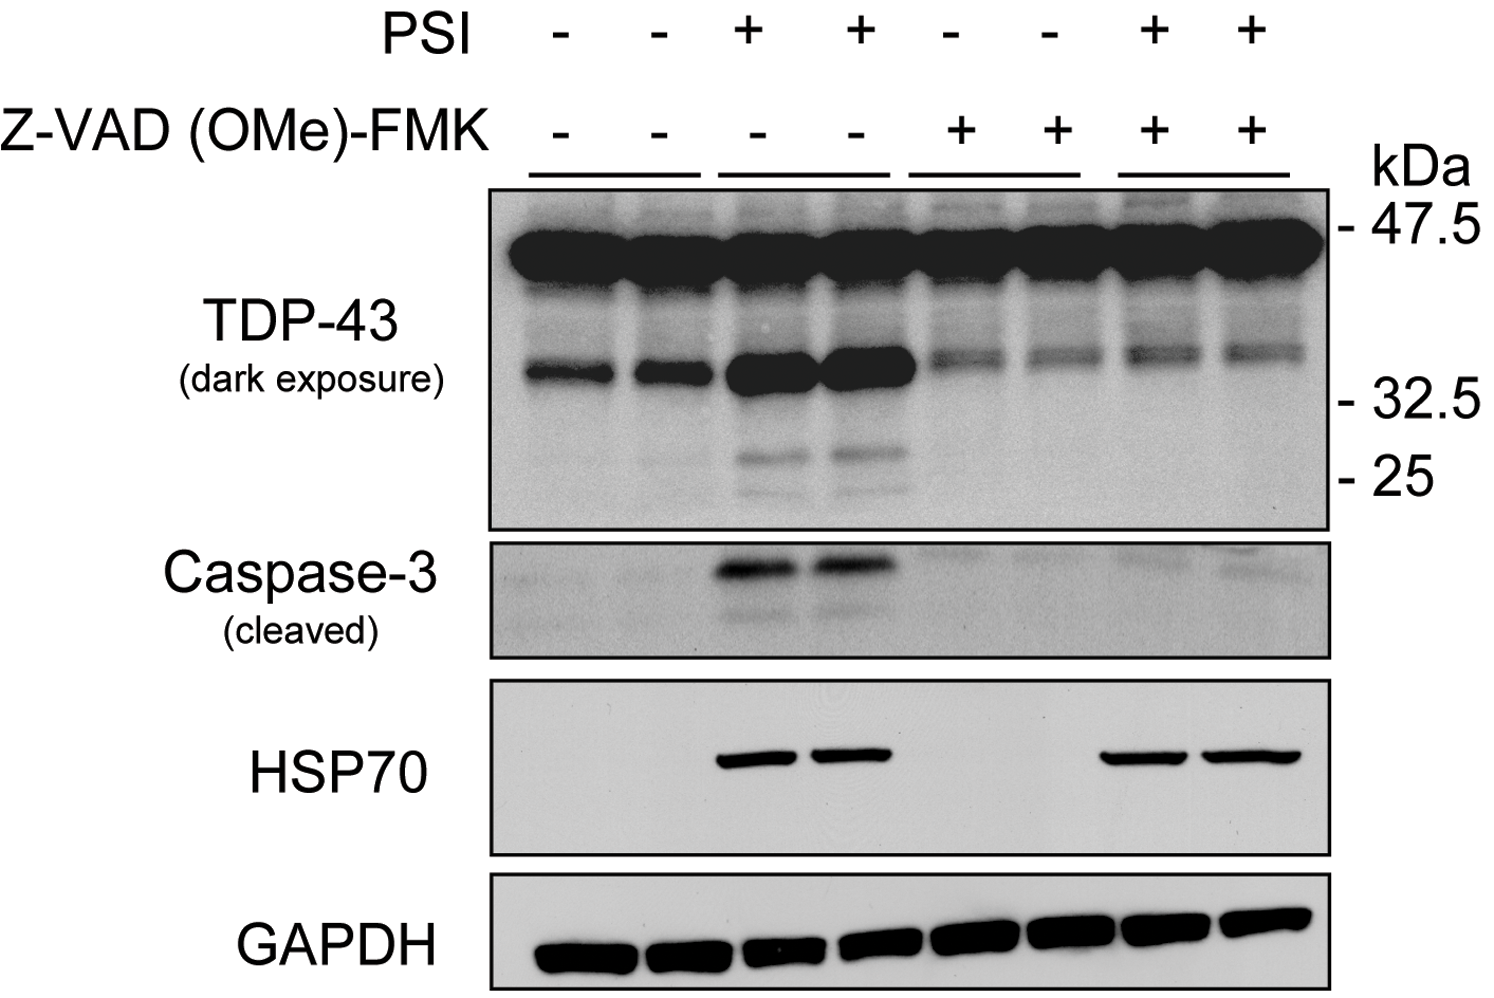 Proteasome inhibition increases the proteolytic cleavage of TDP-43.